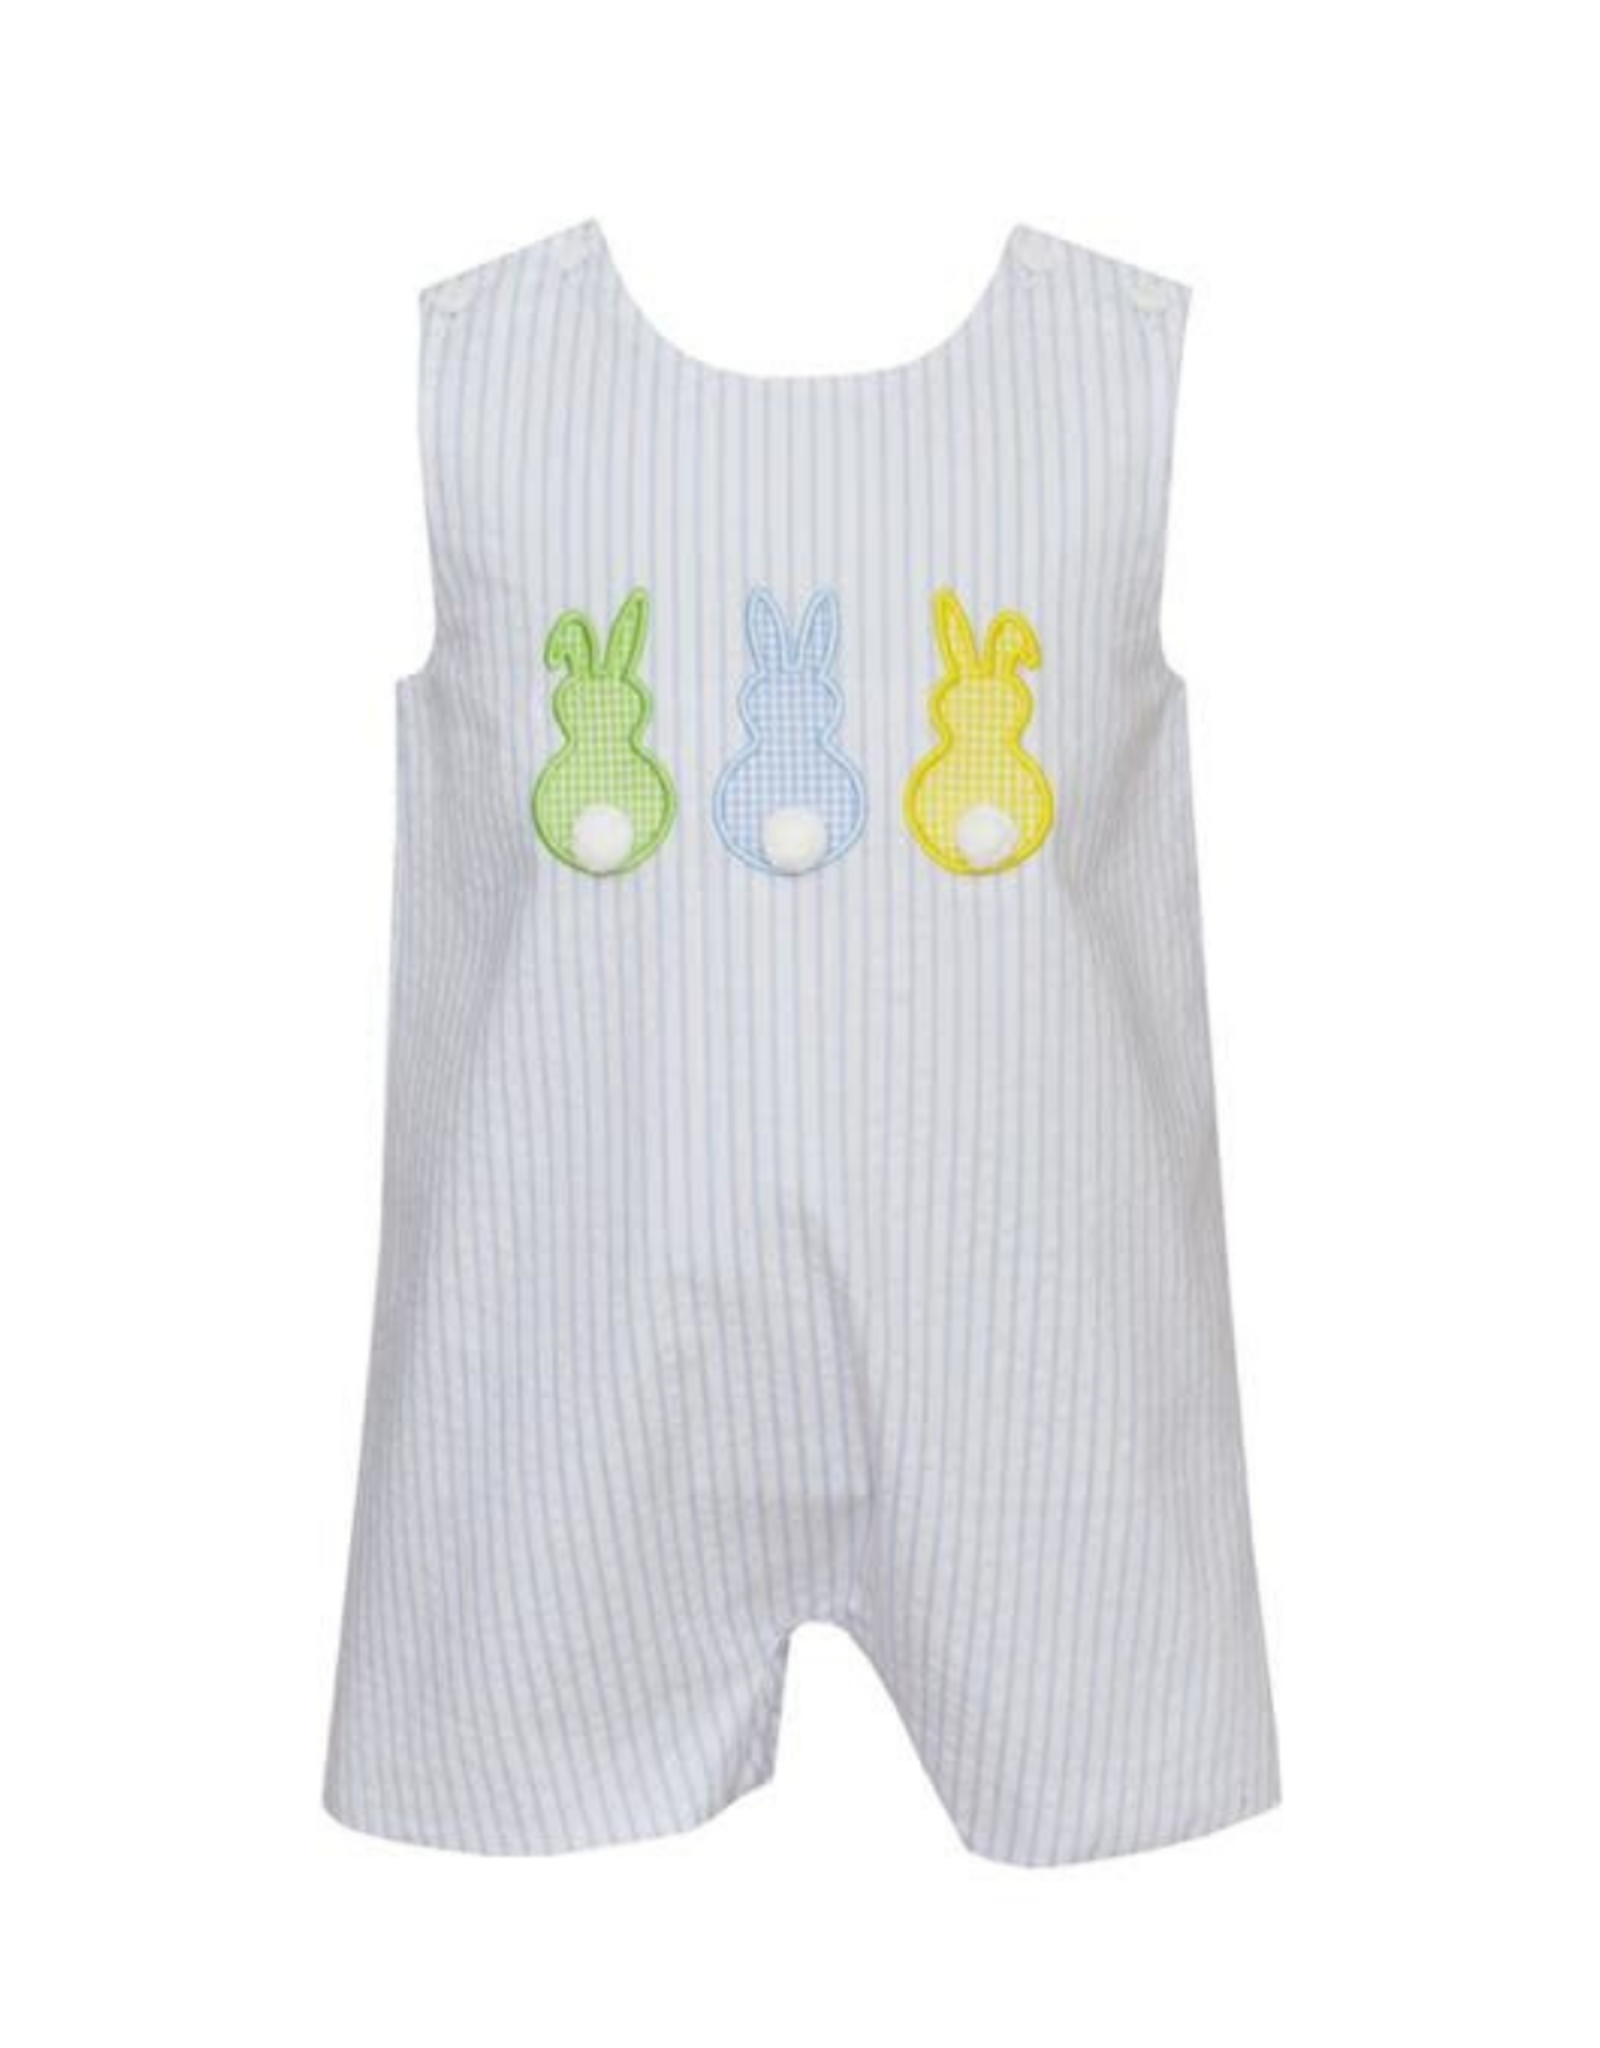 Claire and Charlie Cottontails Blue Seersucker Shortall